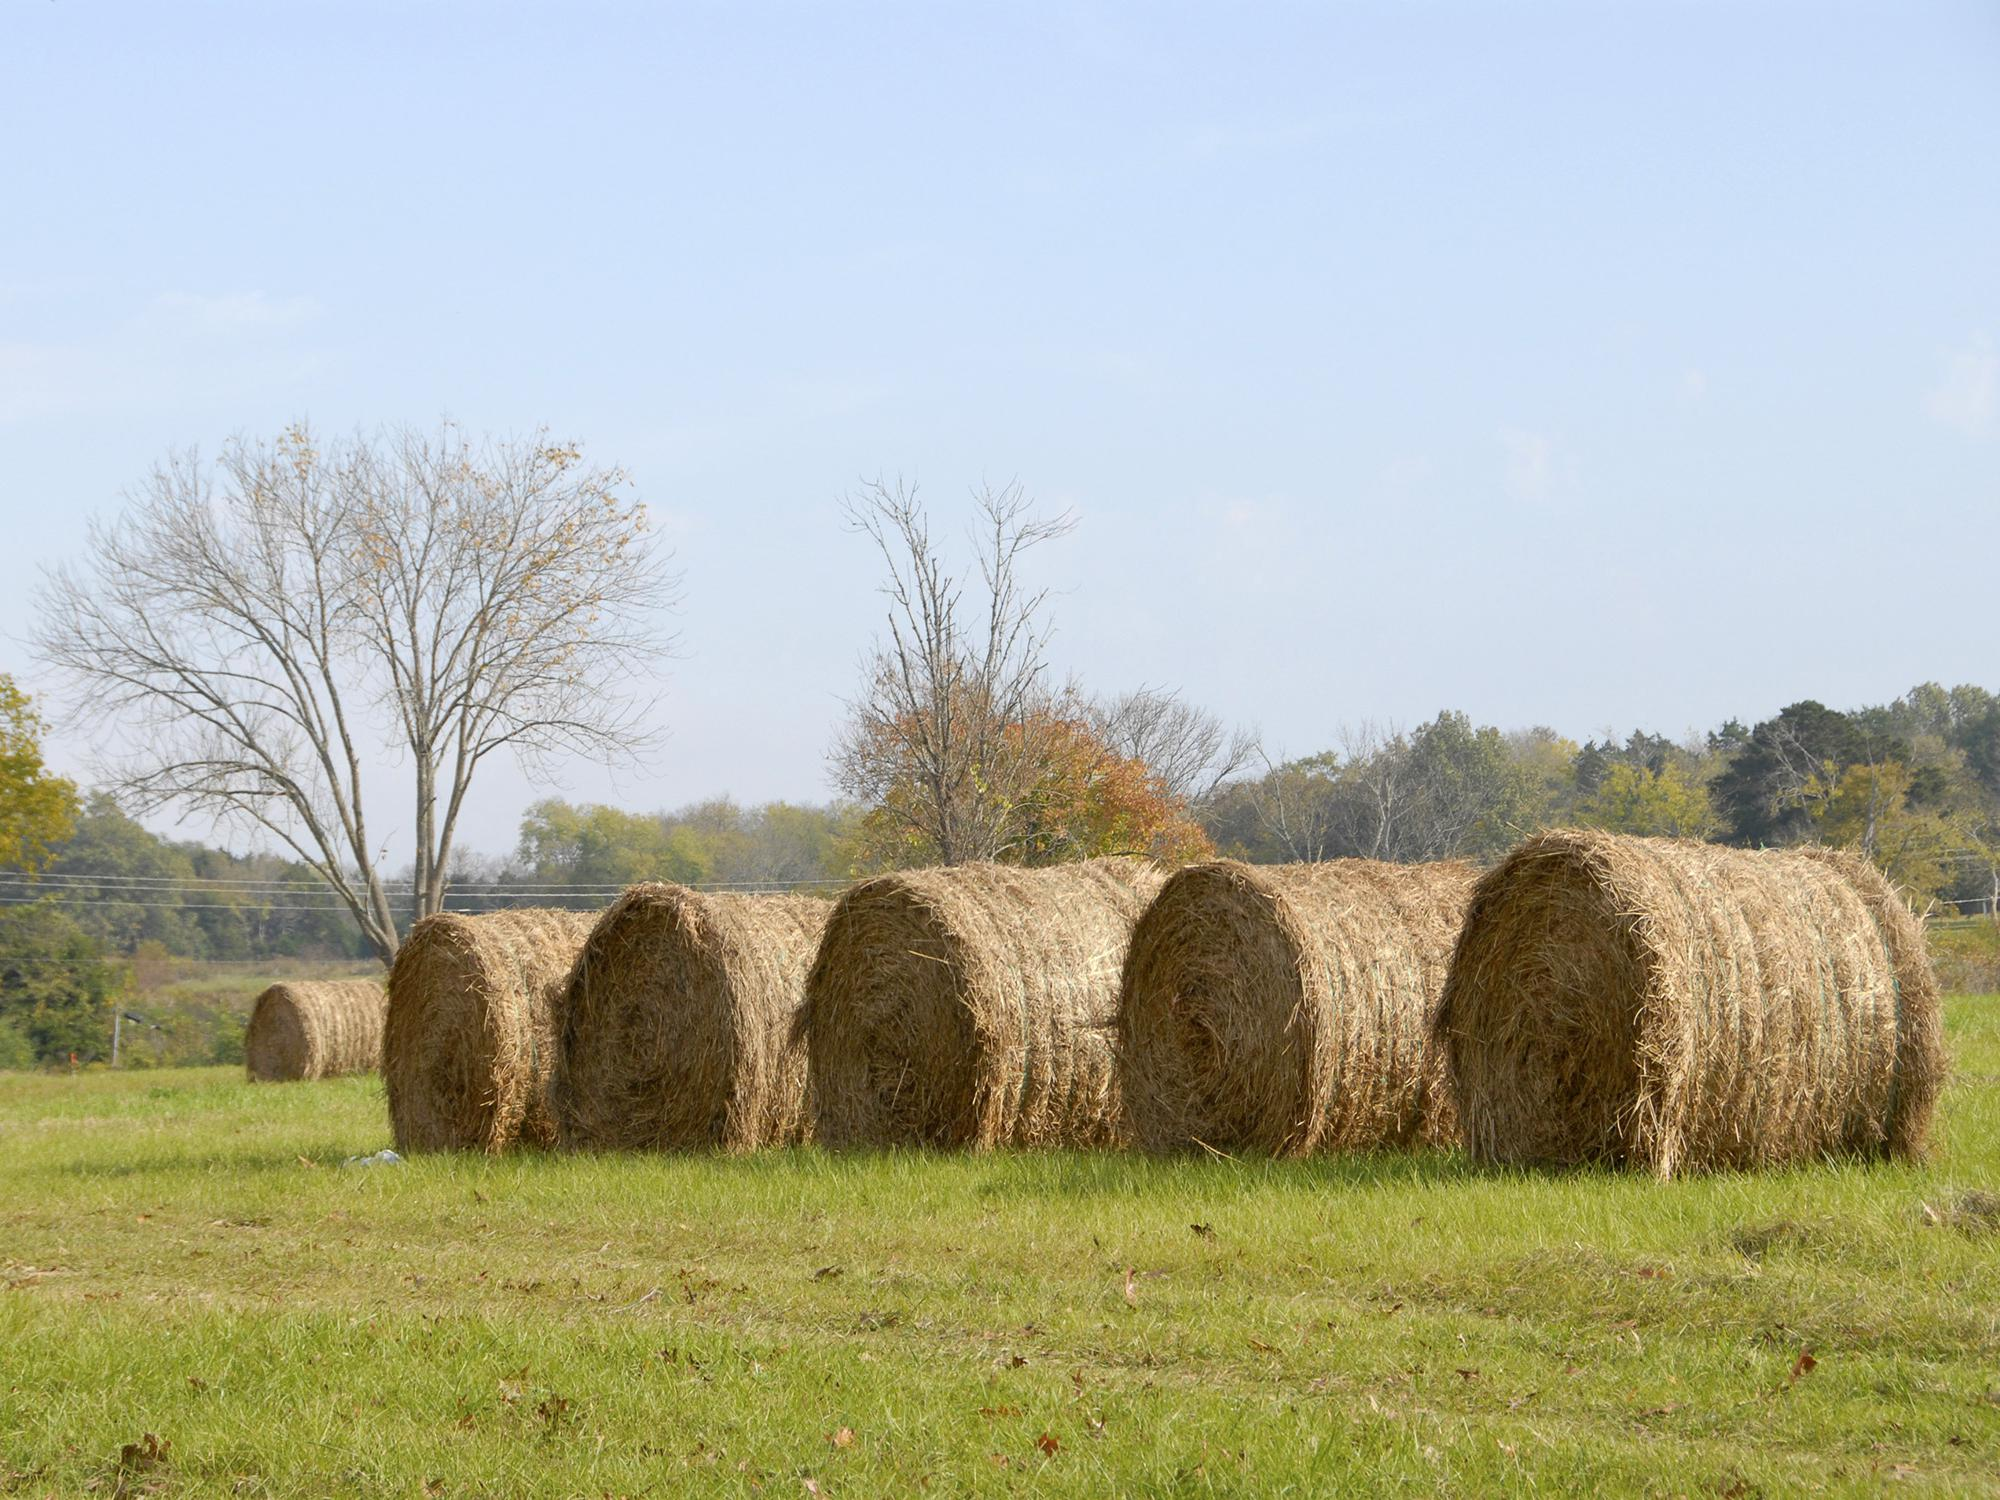 A grower in Oktibbeha County, Miss., has hay bales in the field and fall grasses already coming up on Oct. 26, 2012. This year's hay crop has the potential to be the fourth most valuable crop in the state, behind soybeans, corn and cotton. (Photo by MSU Ag Communications/Tim McAlavy)